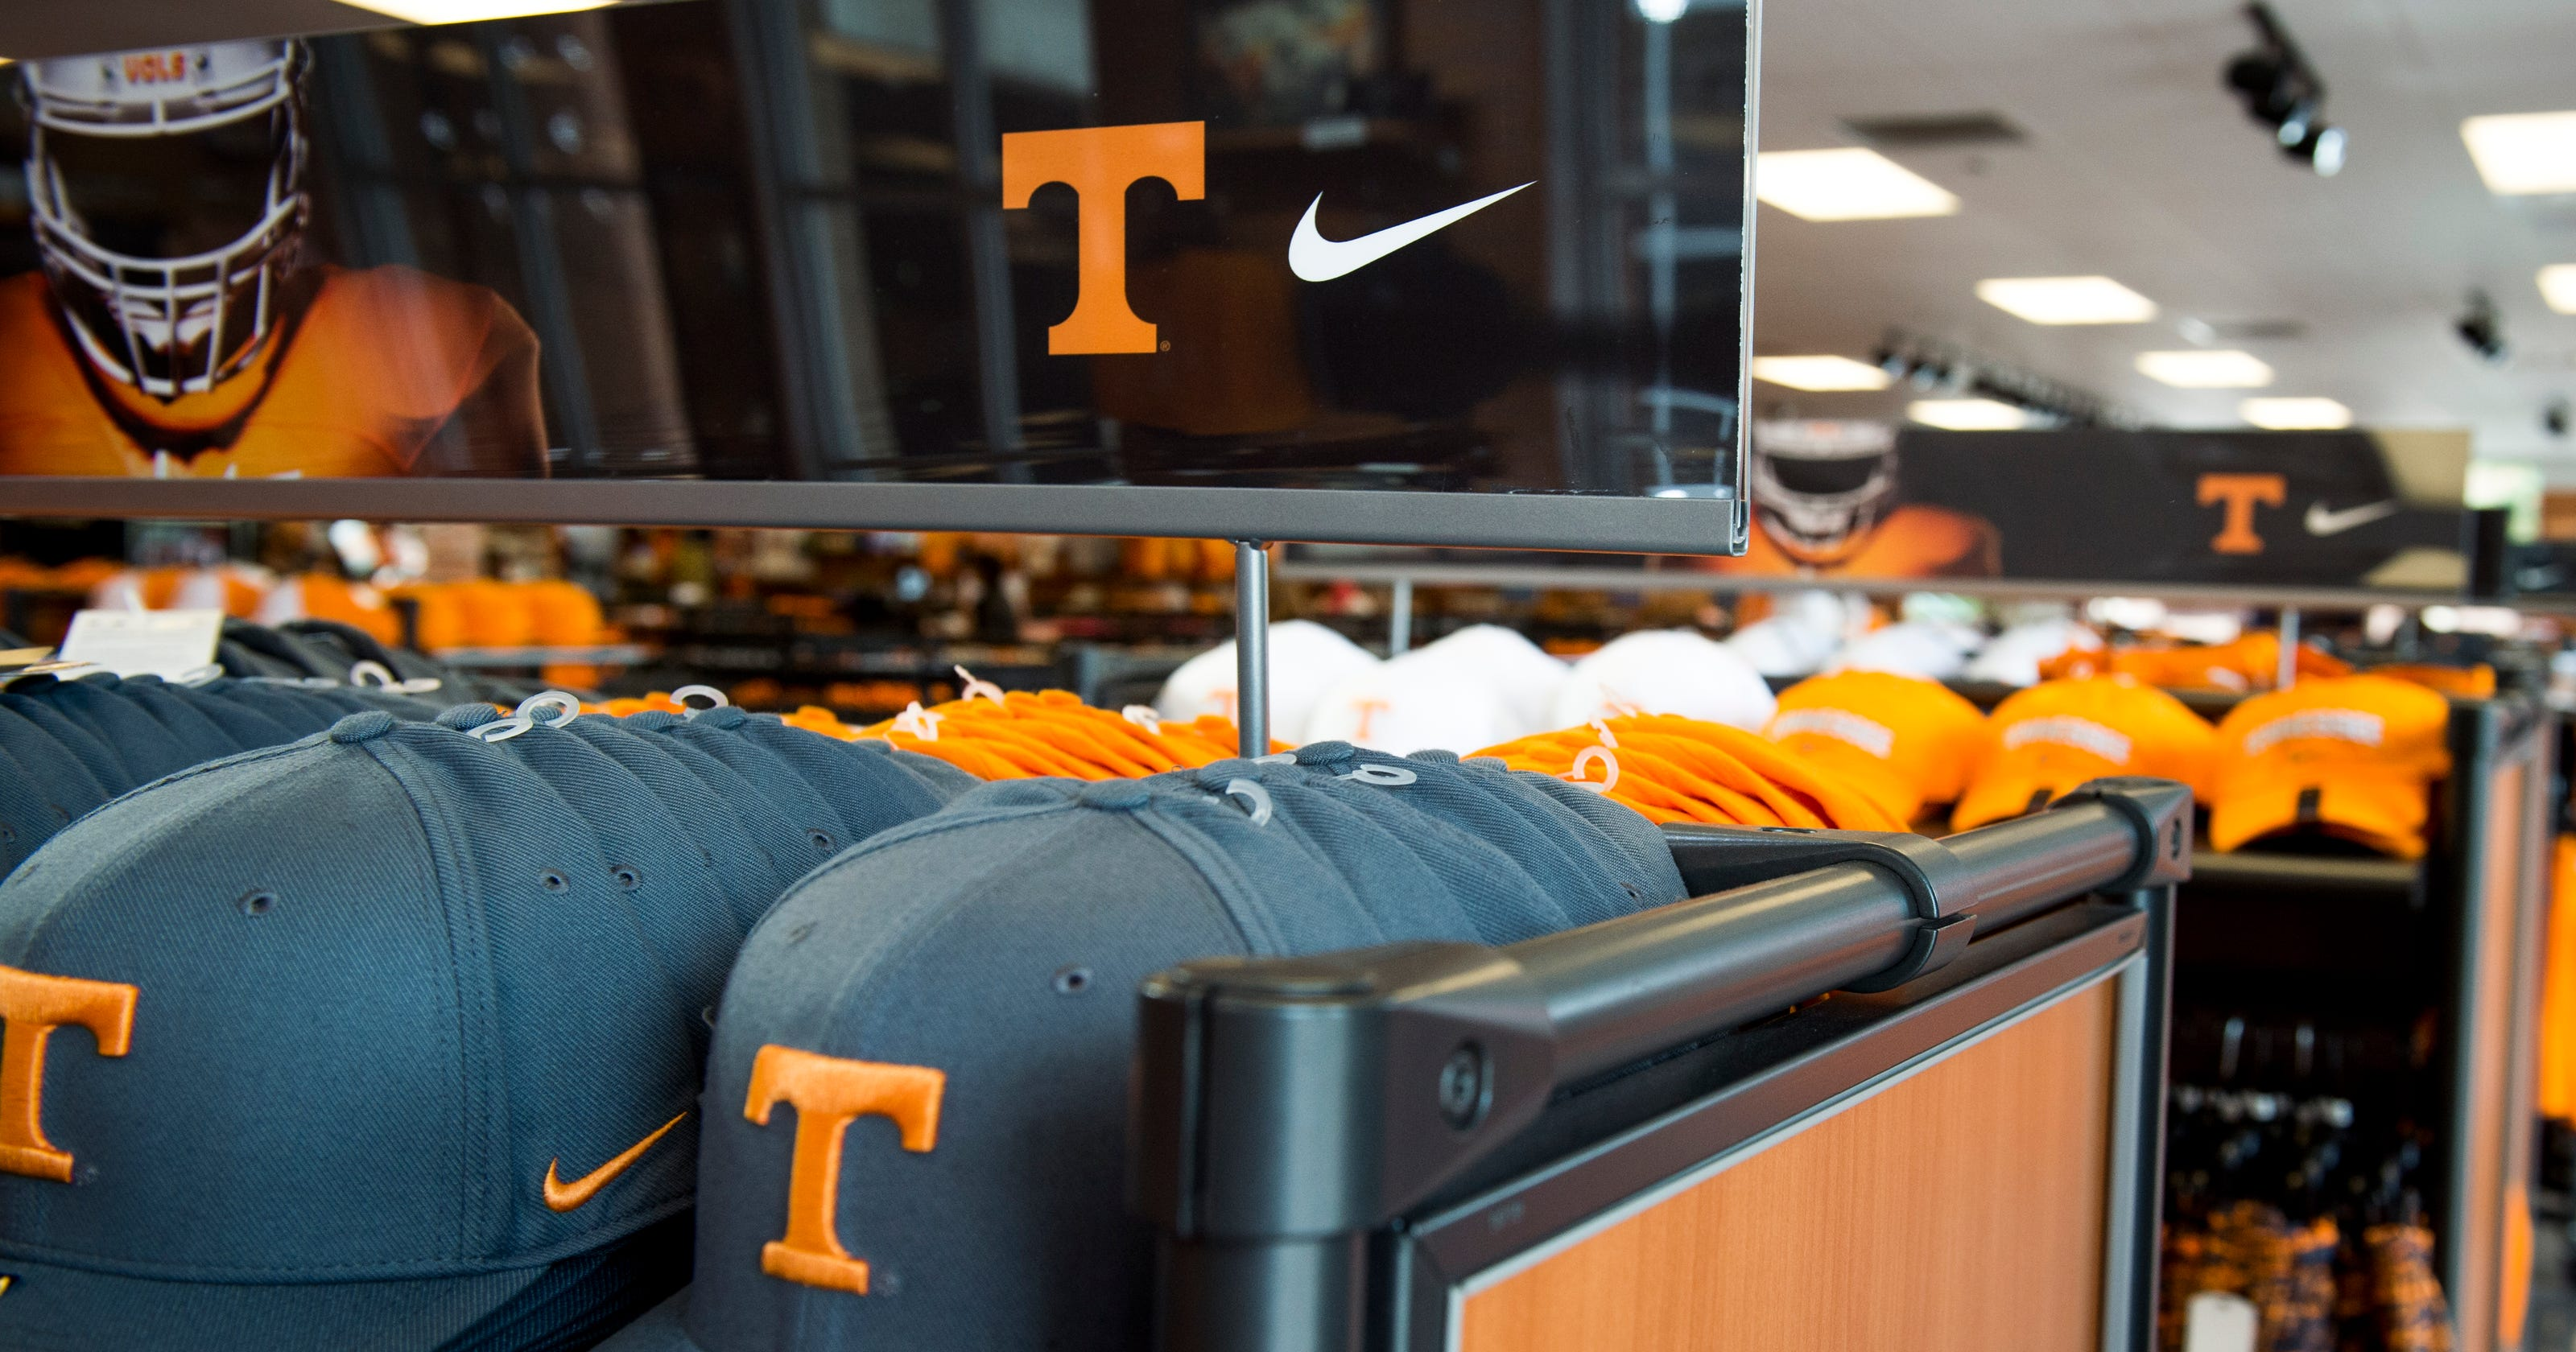 88b4a52aa48d UT Vols  Colin Kaepernick ad outrage won t end Nike contract